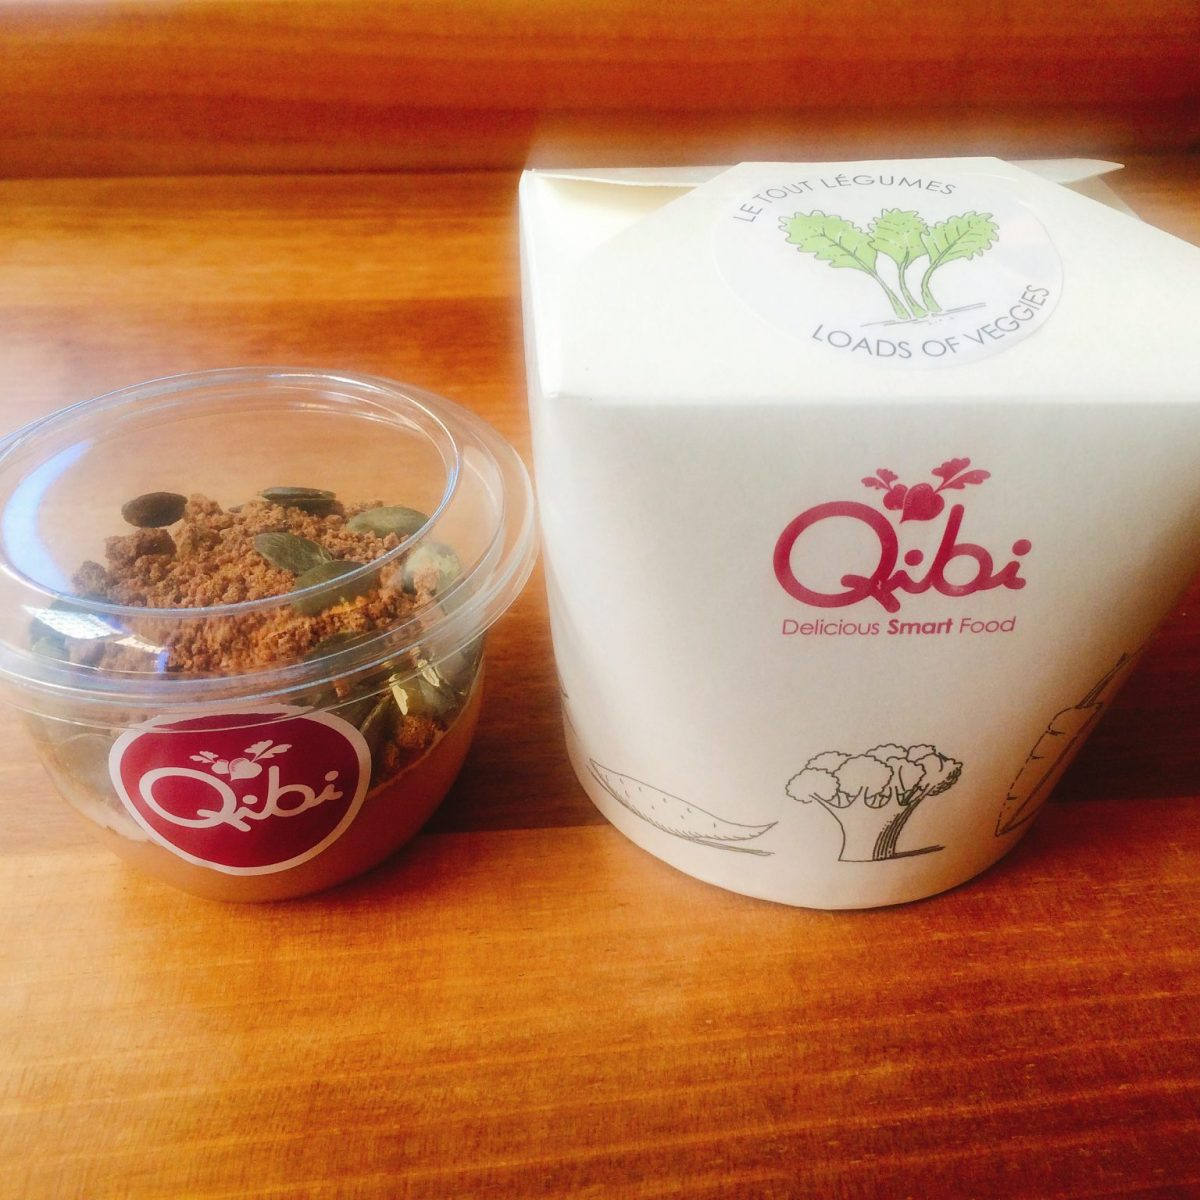 Qibi - Vegan Food in Geneva